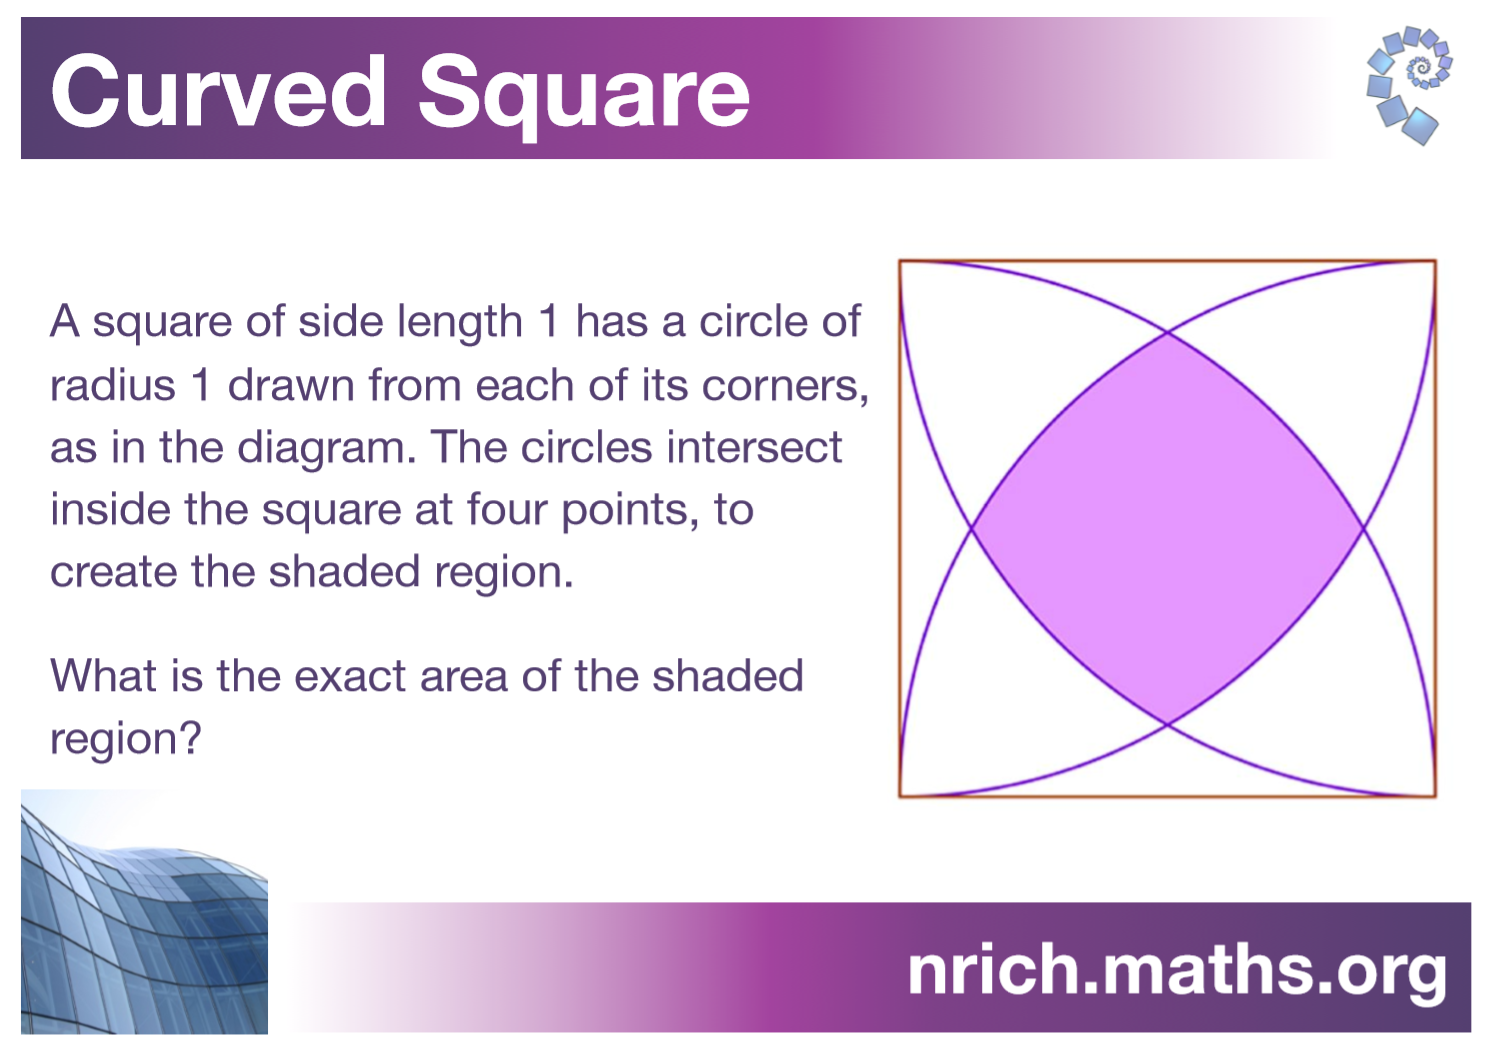 Curved Square Poster : nrich.maths.org